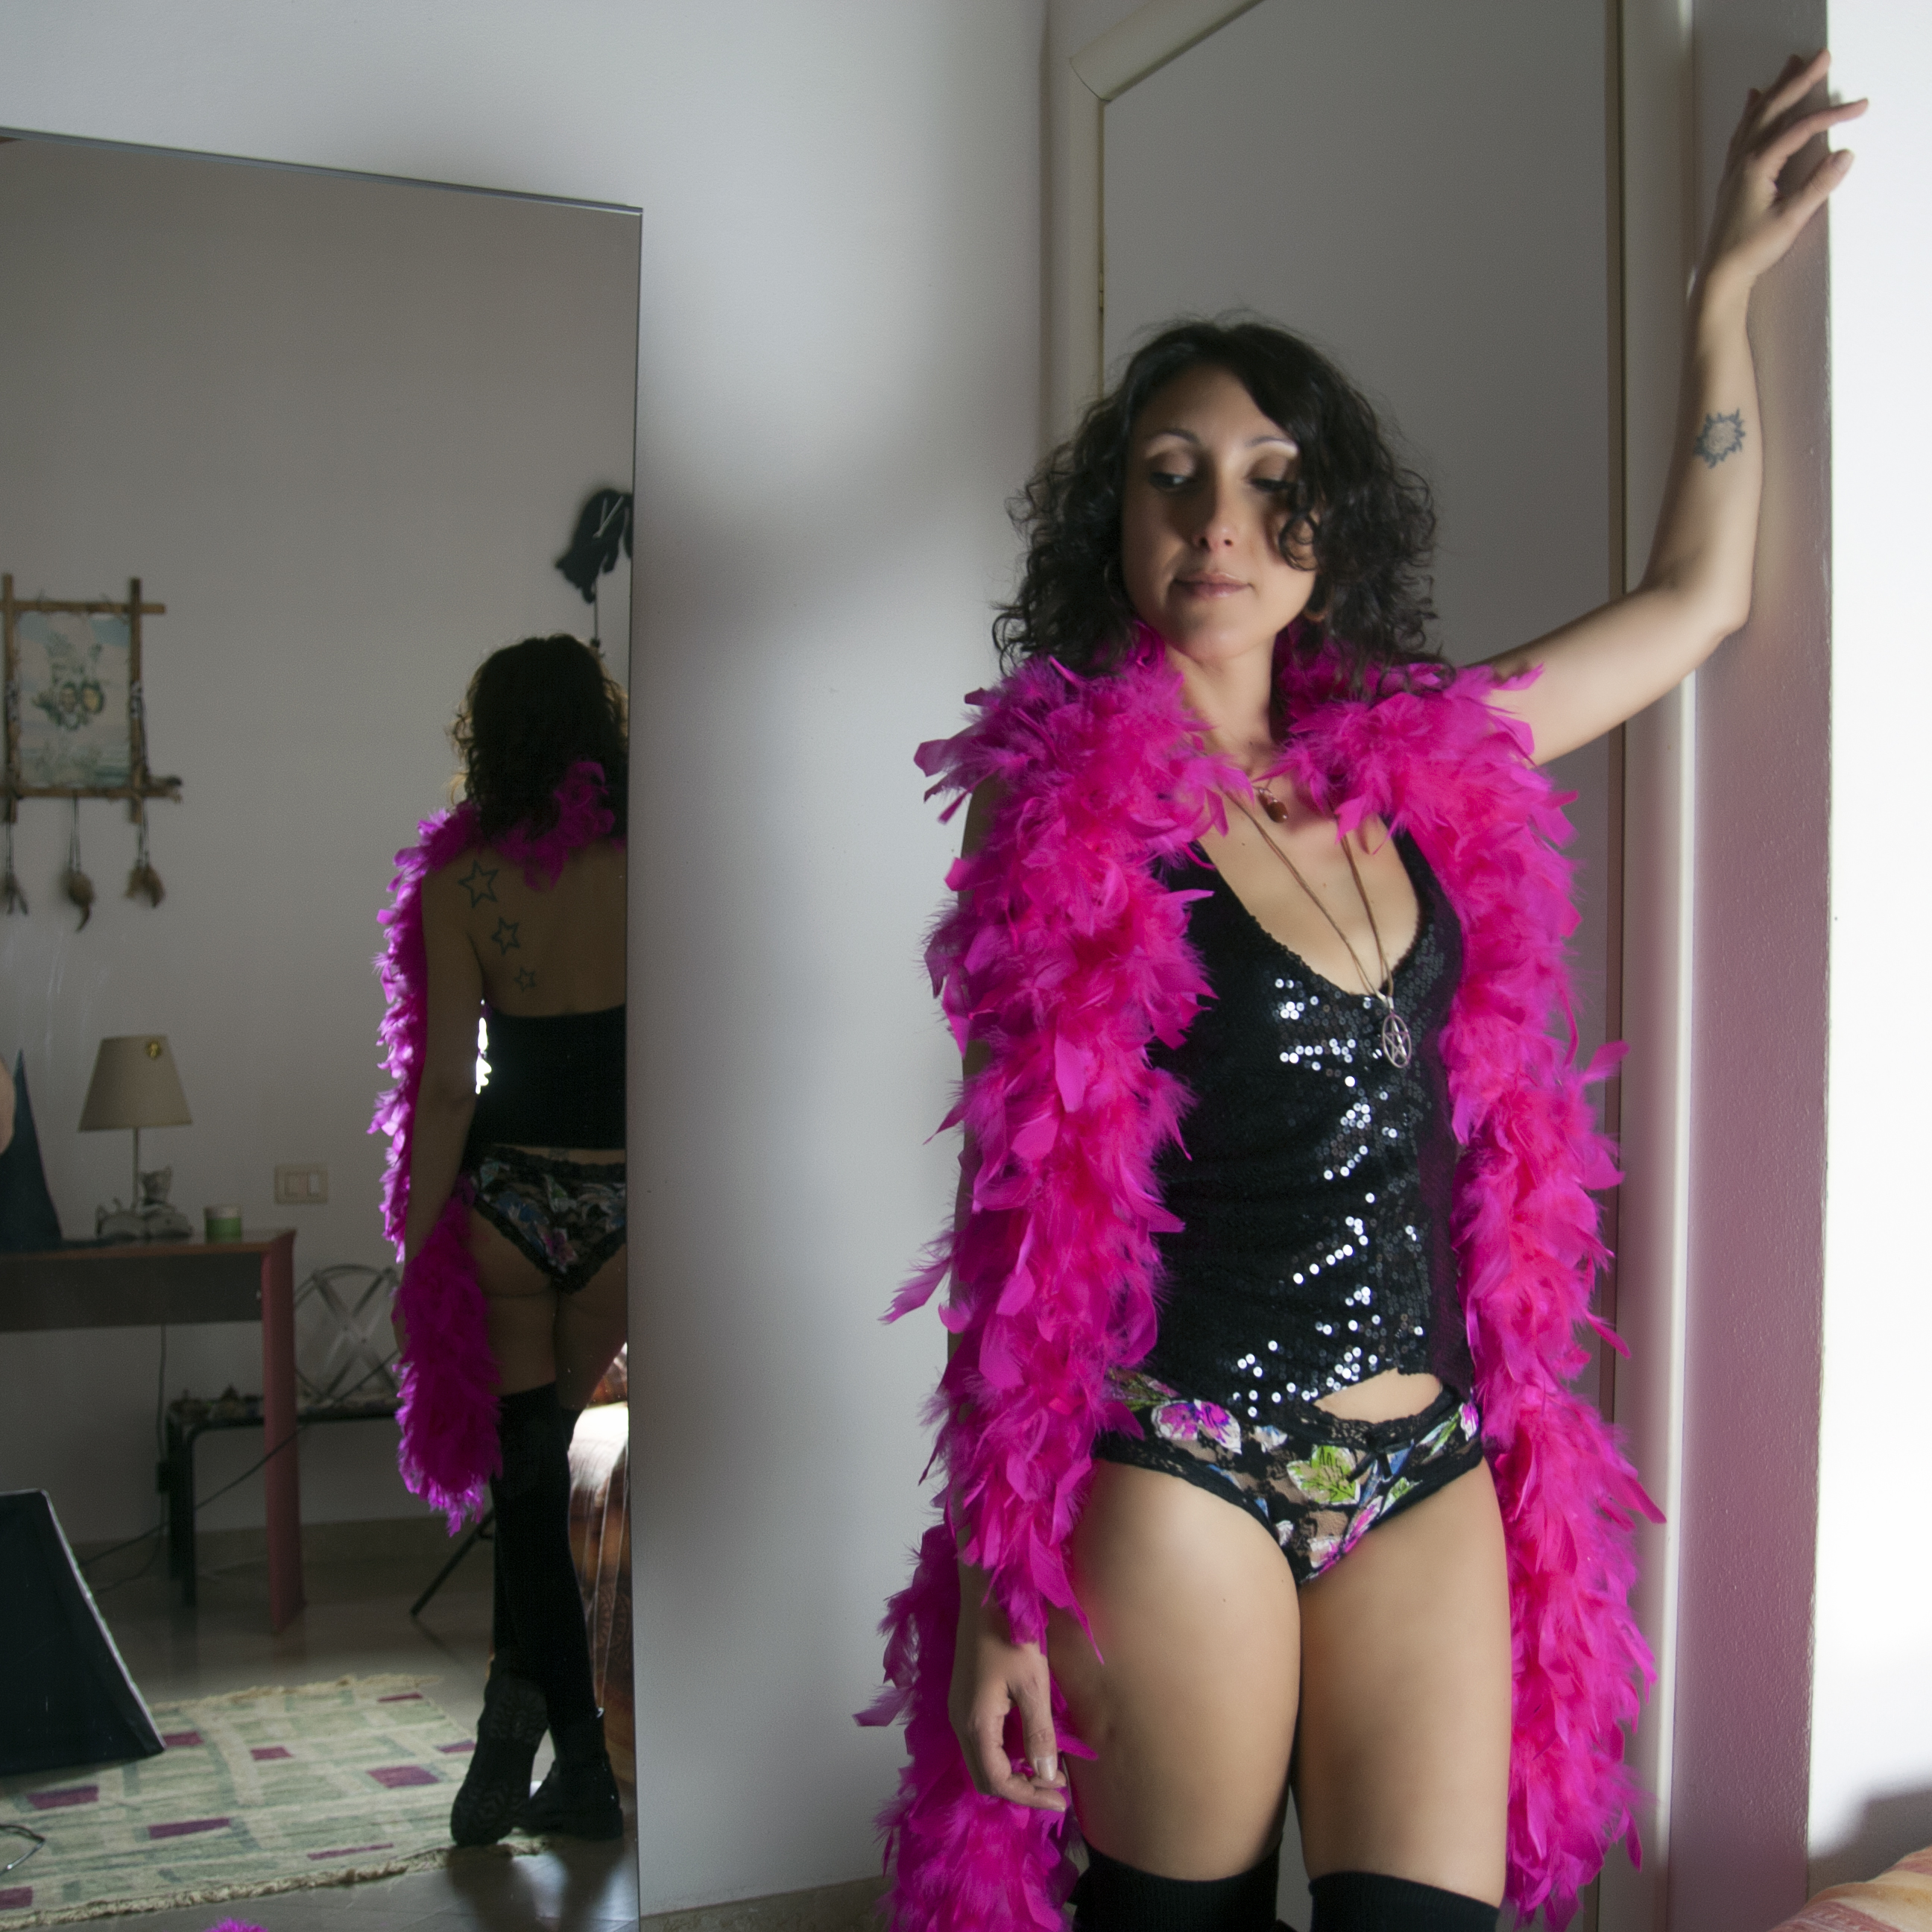 Pink Boa in the mirror